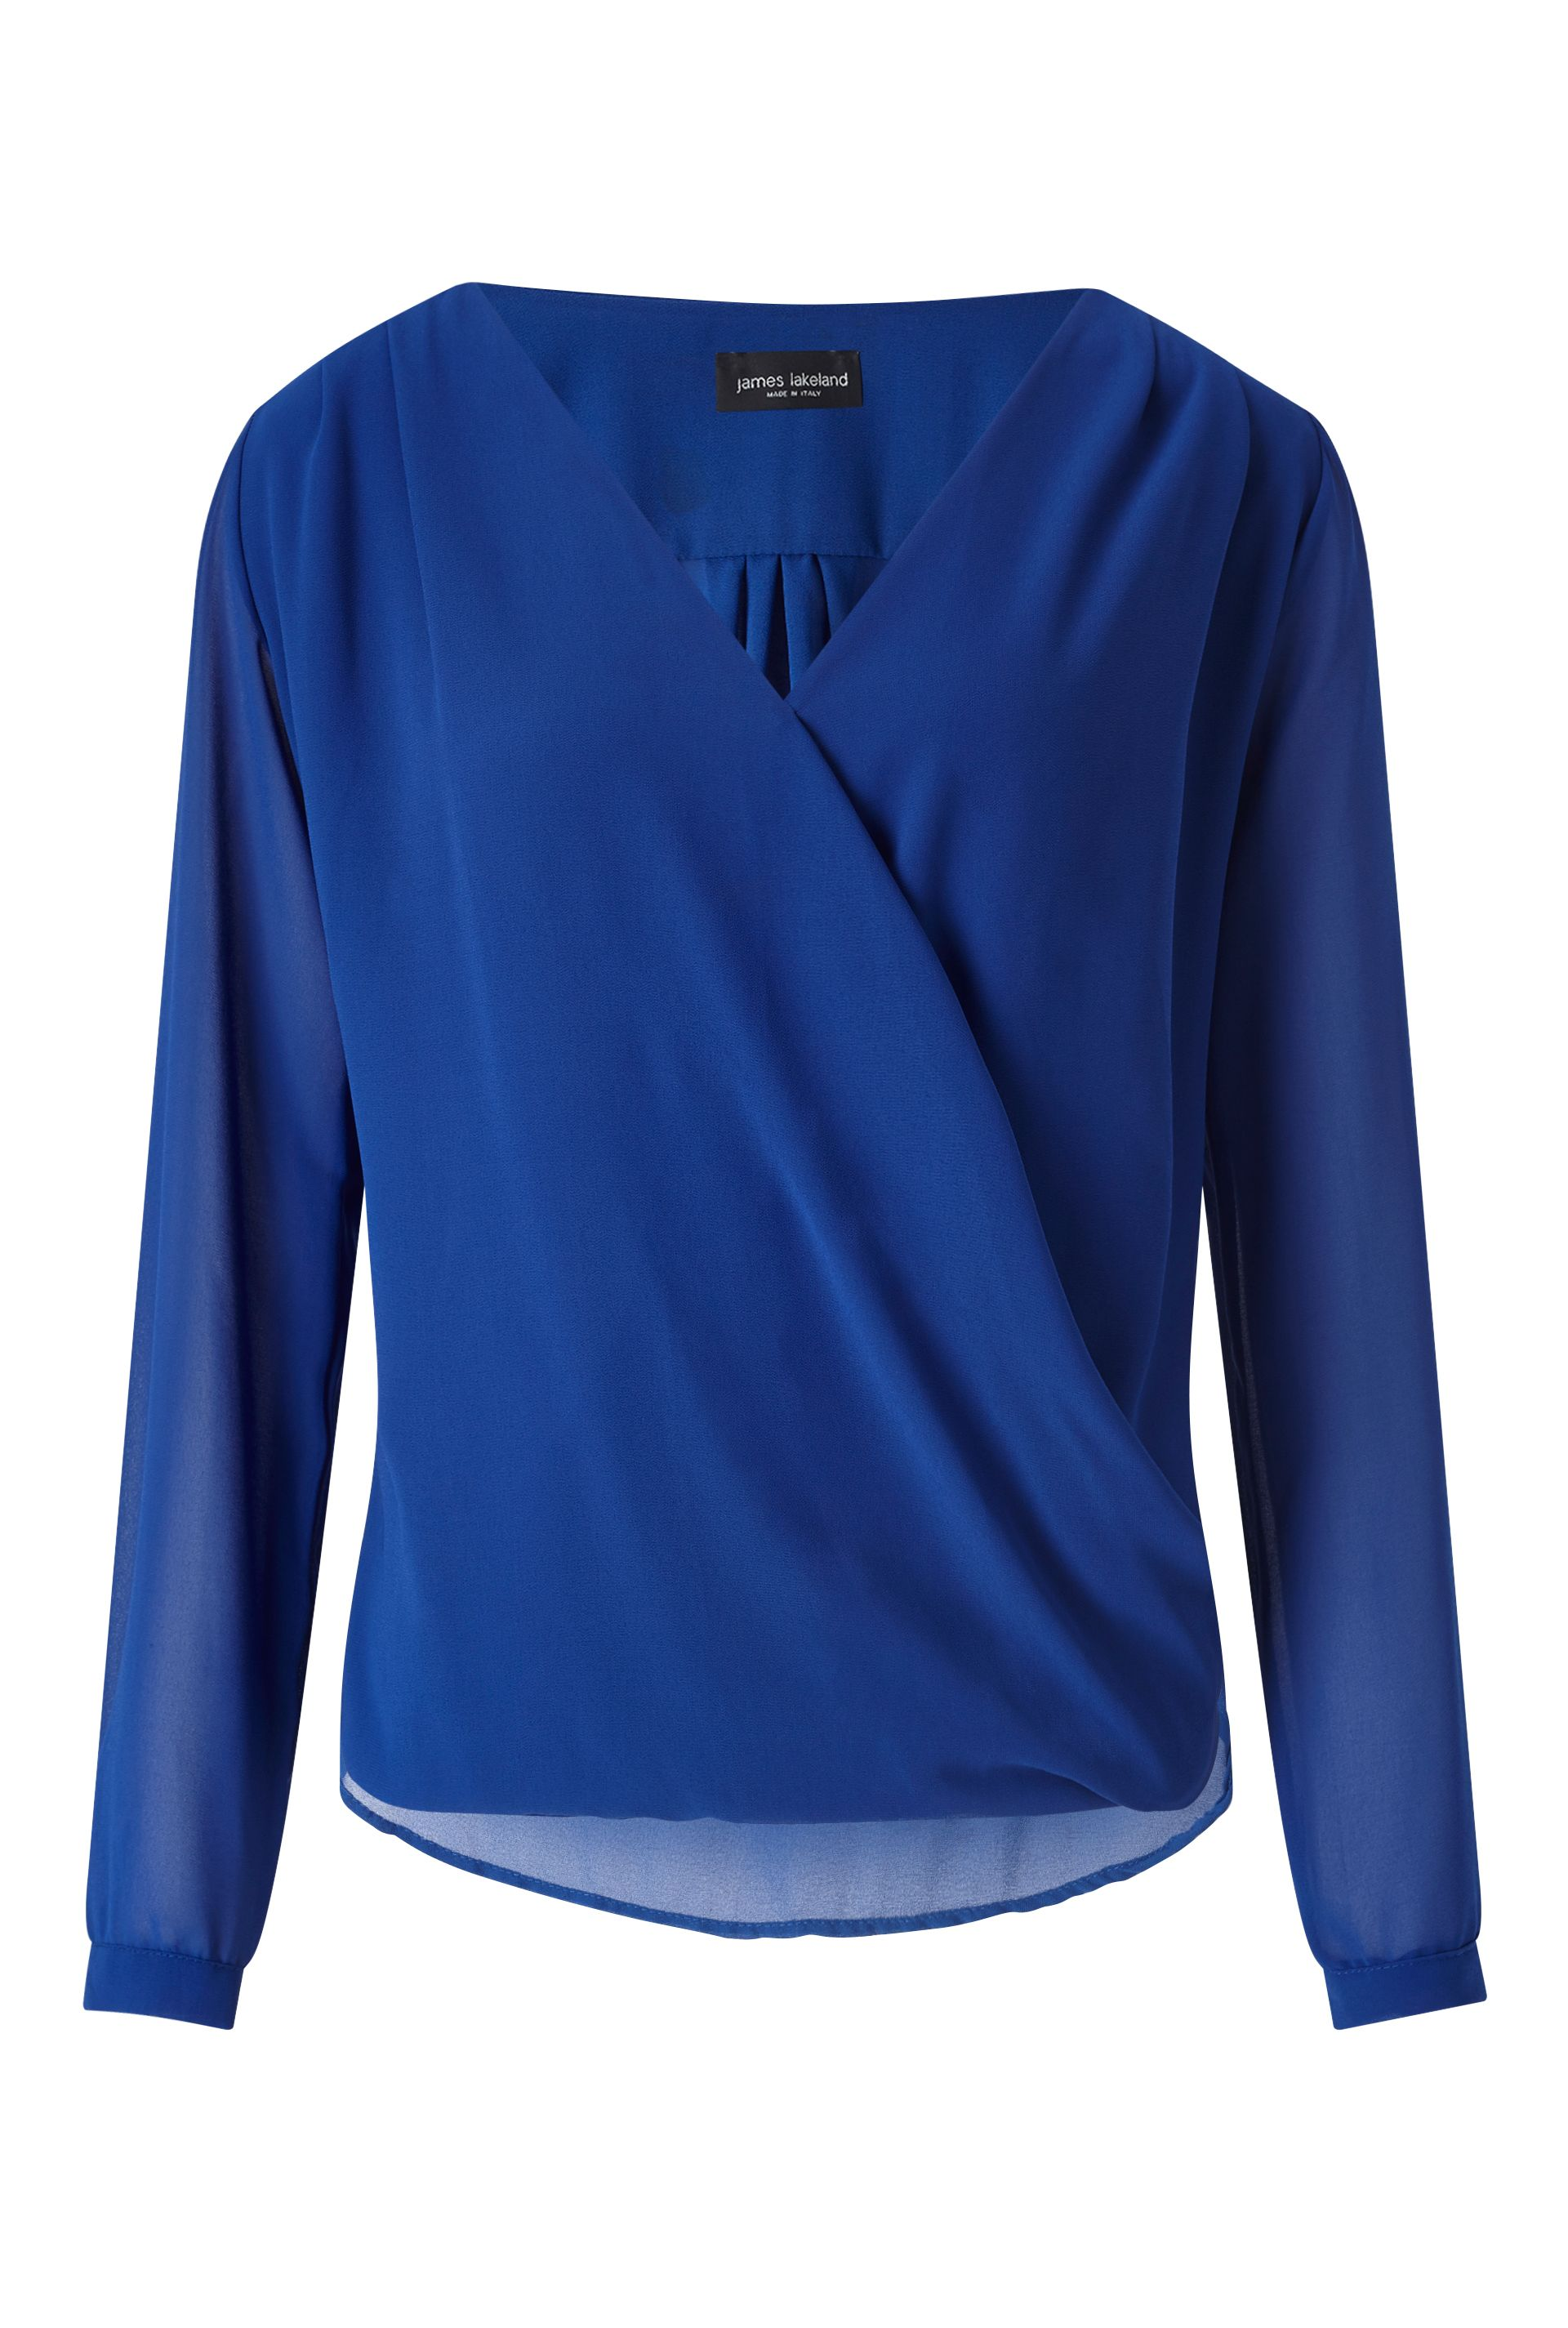 James Lakeland Crossover Blouse, Blue